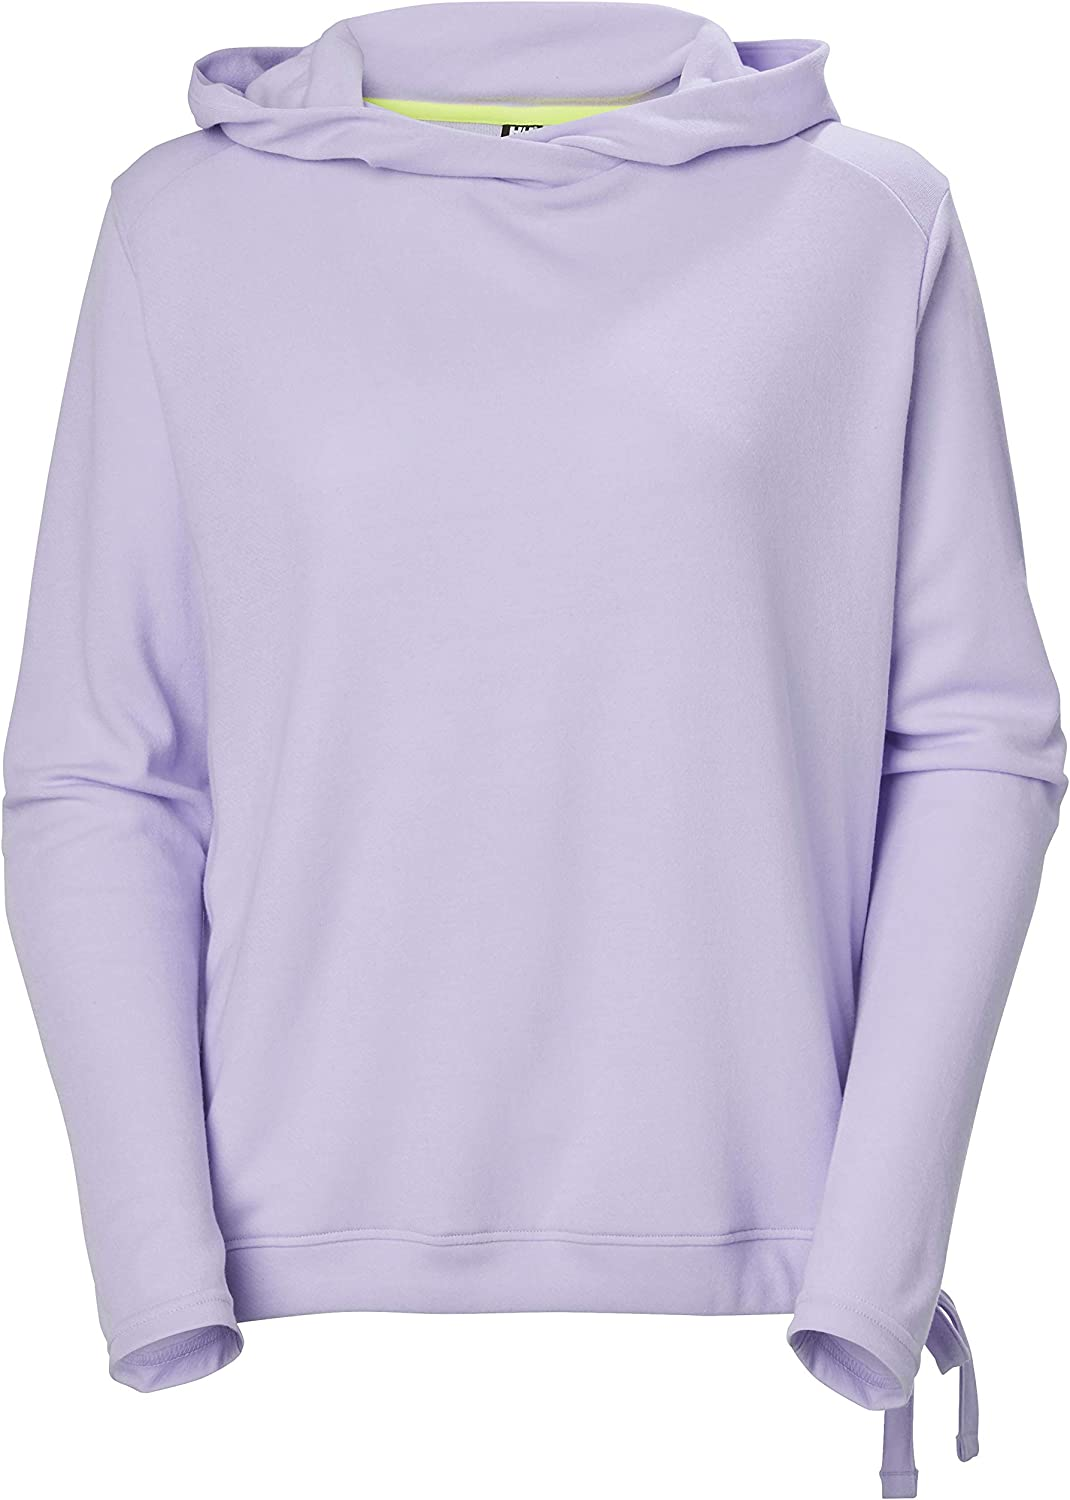 Helly-Hansen Limited time sale Women's Cheap sale Siren Hoodie Dry Quick